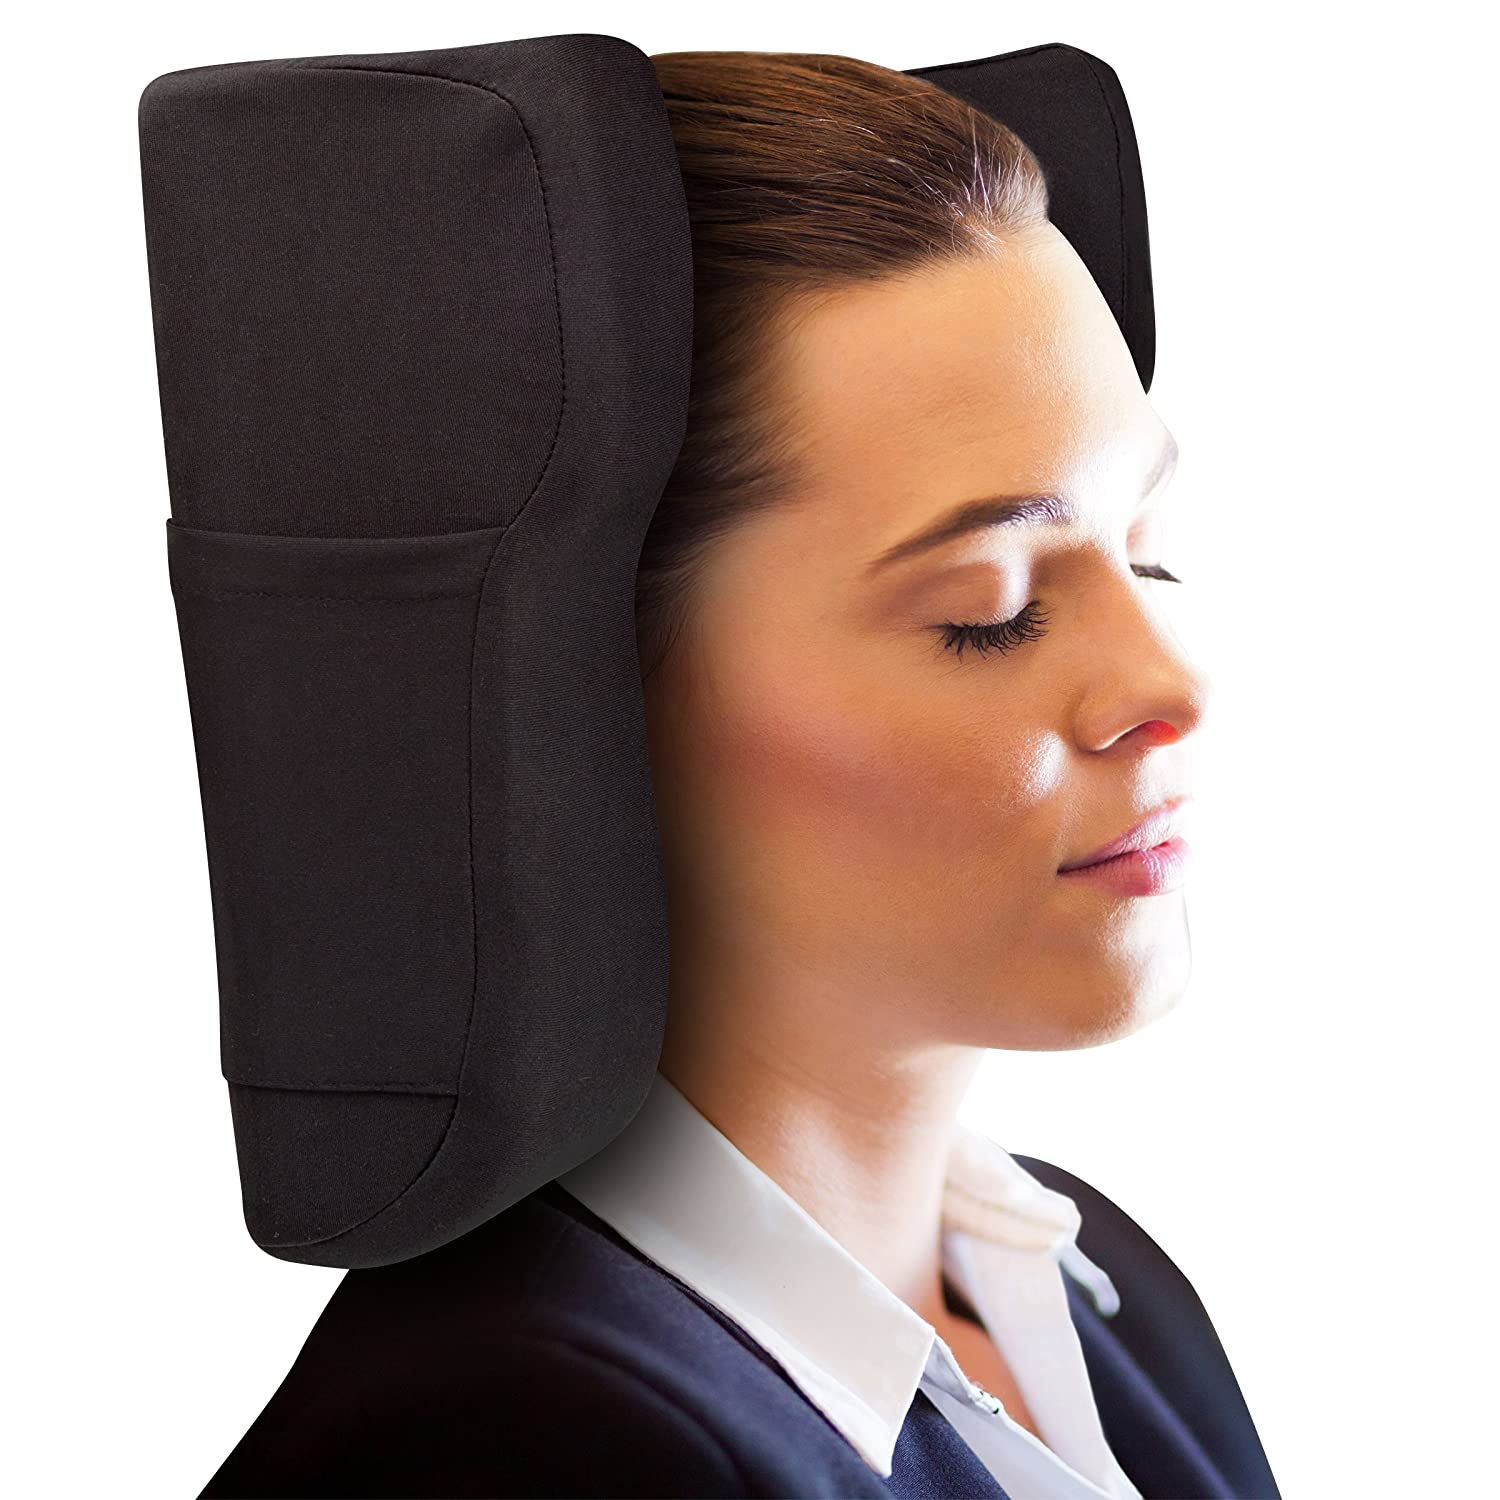 Travel Pillow Designed by Physical Therapist Memory Foam Curve Support Neck Shoulder Head and Spinal Pain Relief World Pillow by Bluestone Posture